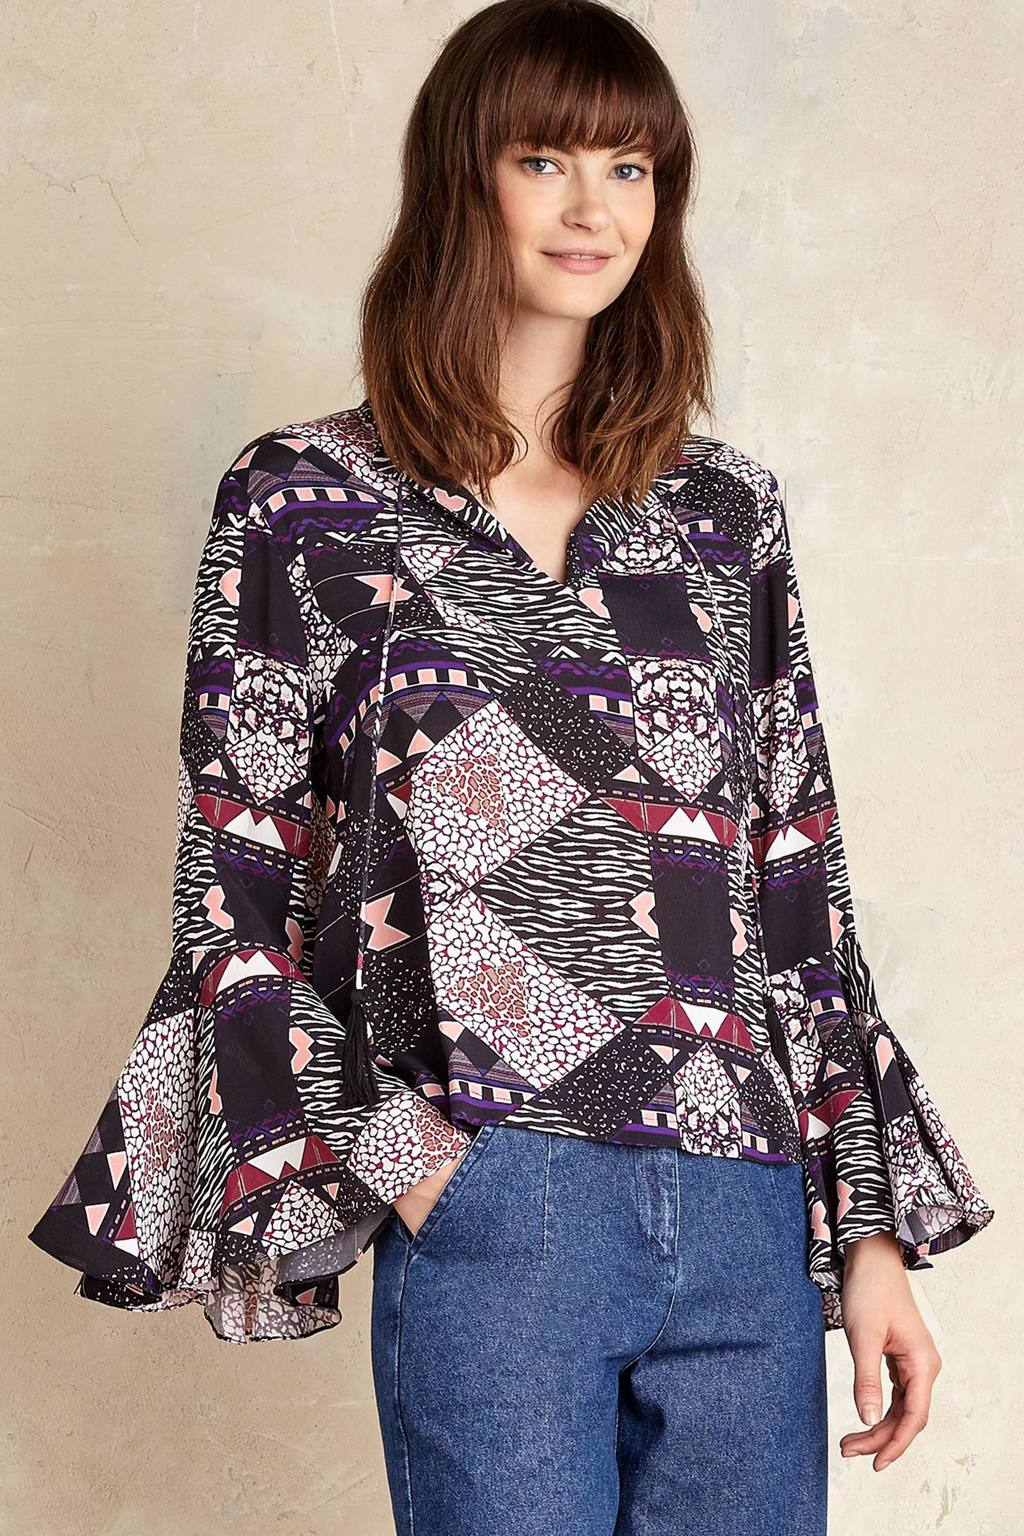 Juneau Printed Blouse, Black - neckline: v-neck; sleeve style: bell sleeve; style: blouse; predominant colour: black; occasions: casual; length: standard; fibres: viscose/rayon - 100%; fit: body skimming; sleeve length: long sleeve; texture group: crepes; pattern type: fabric; pattern size: light/subtle; pattern: patterned/print; secondary colour: raspberry; multicoloured: multicoloured; season: a/w 2016